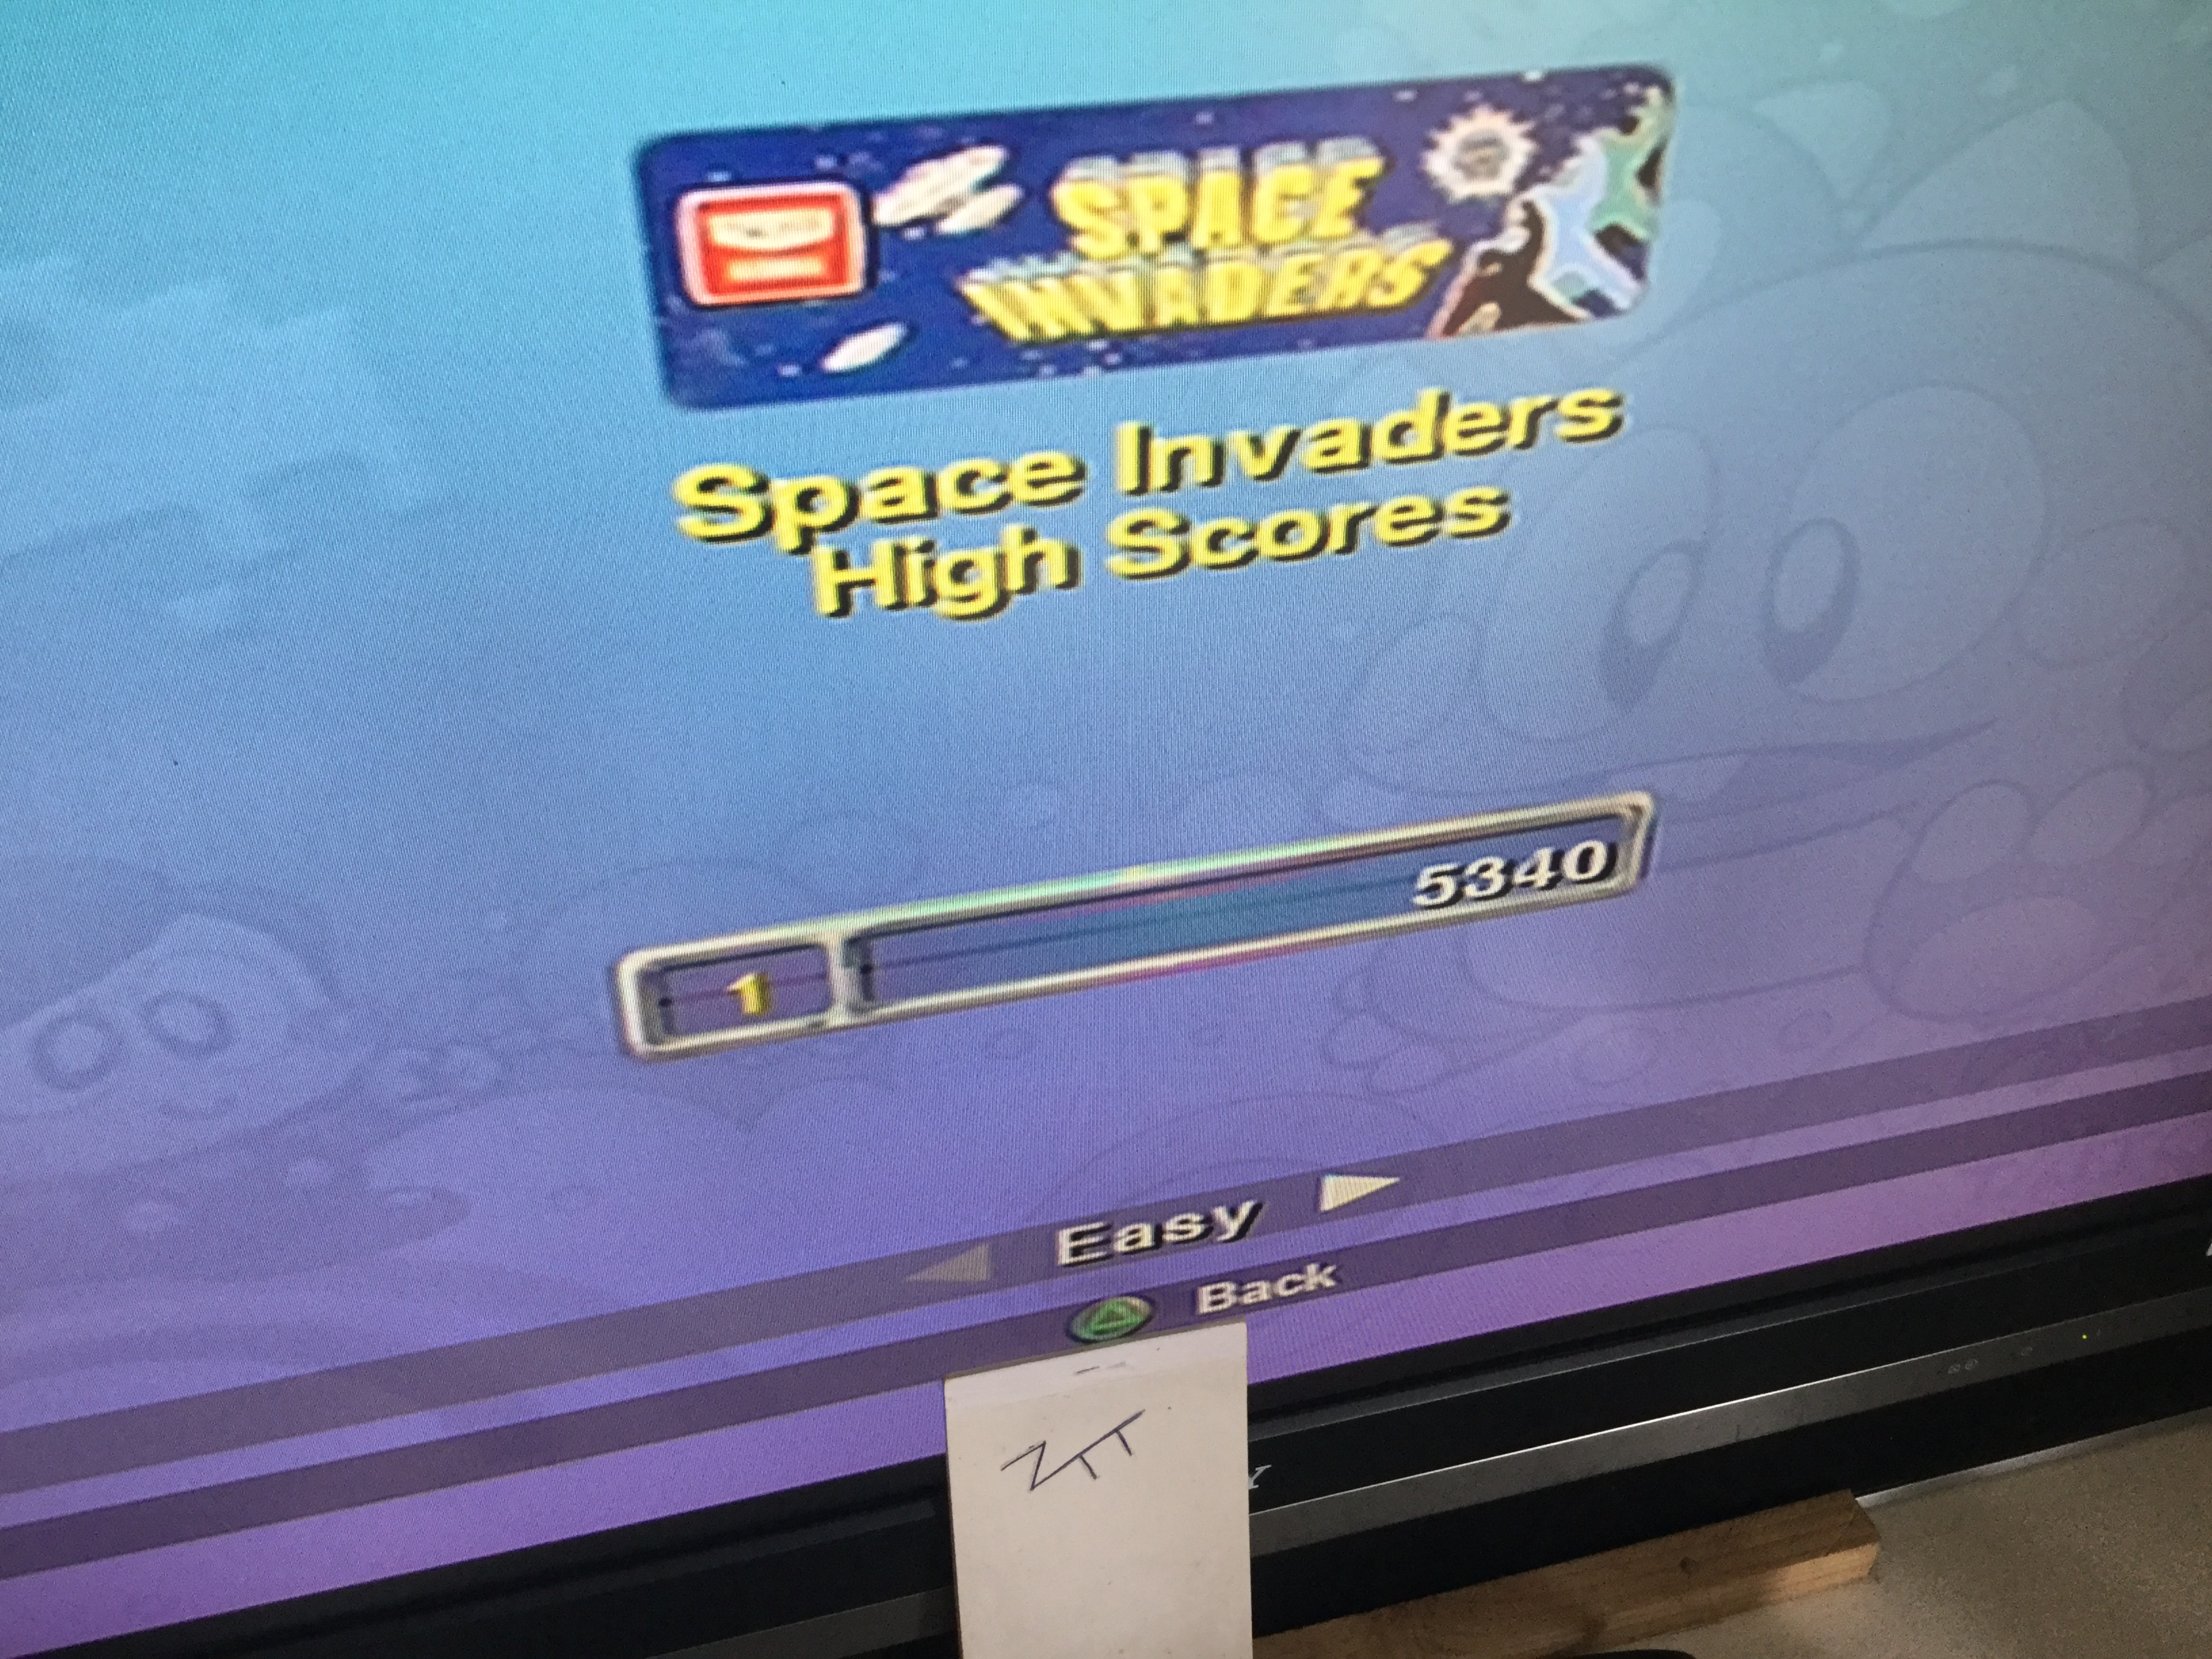 Frankie: Taito Legends: Space Invaders [Easy] (Playstation 2) 5,340 points on 2018-03-31 06:50:11